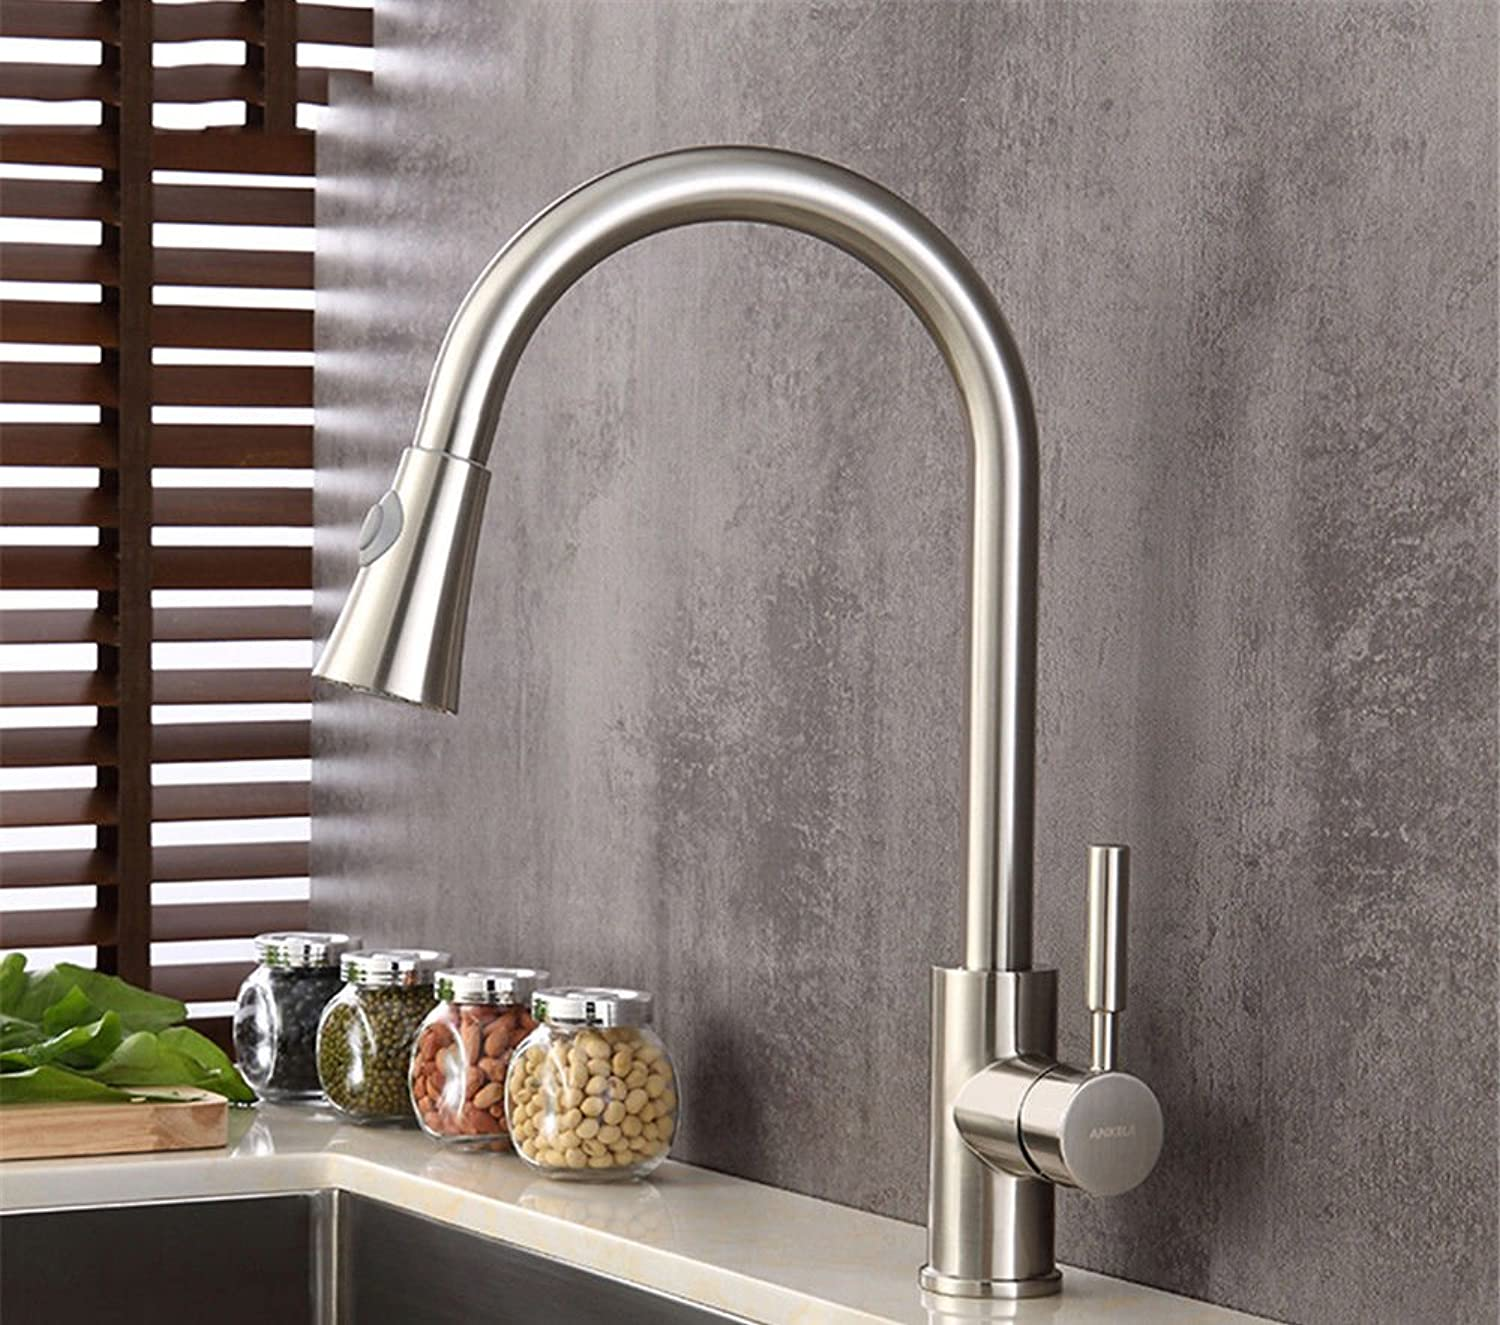 Bijjaladeva Antique Bathroom Sink Vessel Faucet Basin Mixer Tap All copper brushed hot and cold kitchen pull the sink washing dishes pots caster swivel faucet B1